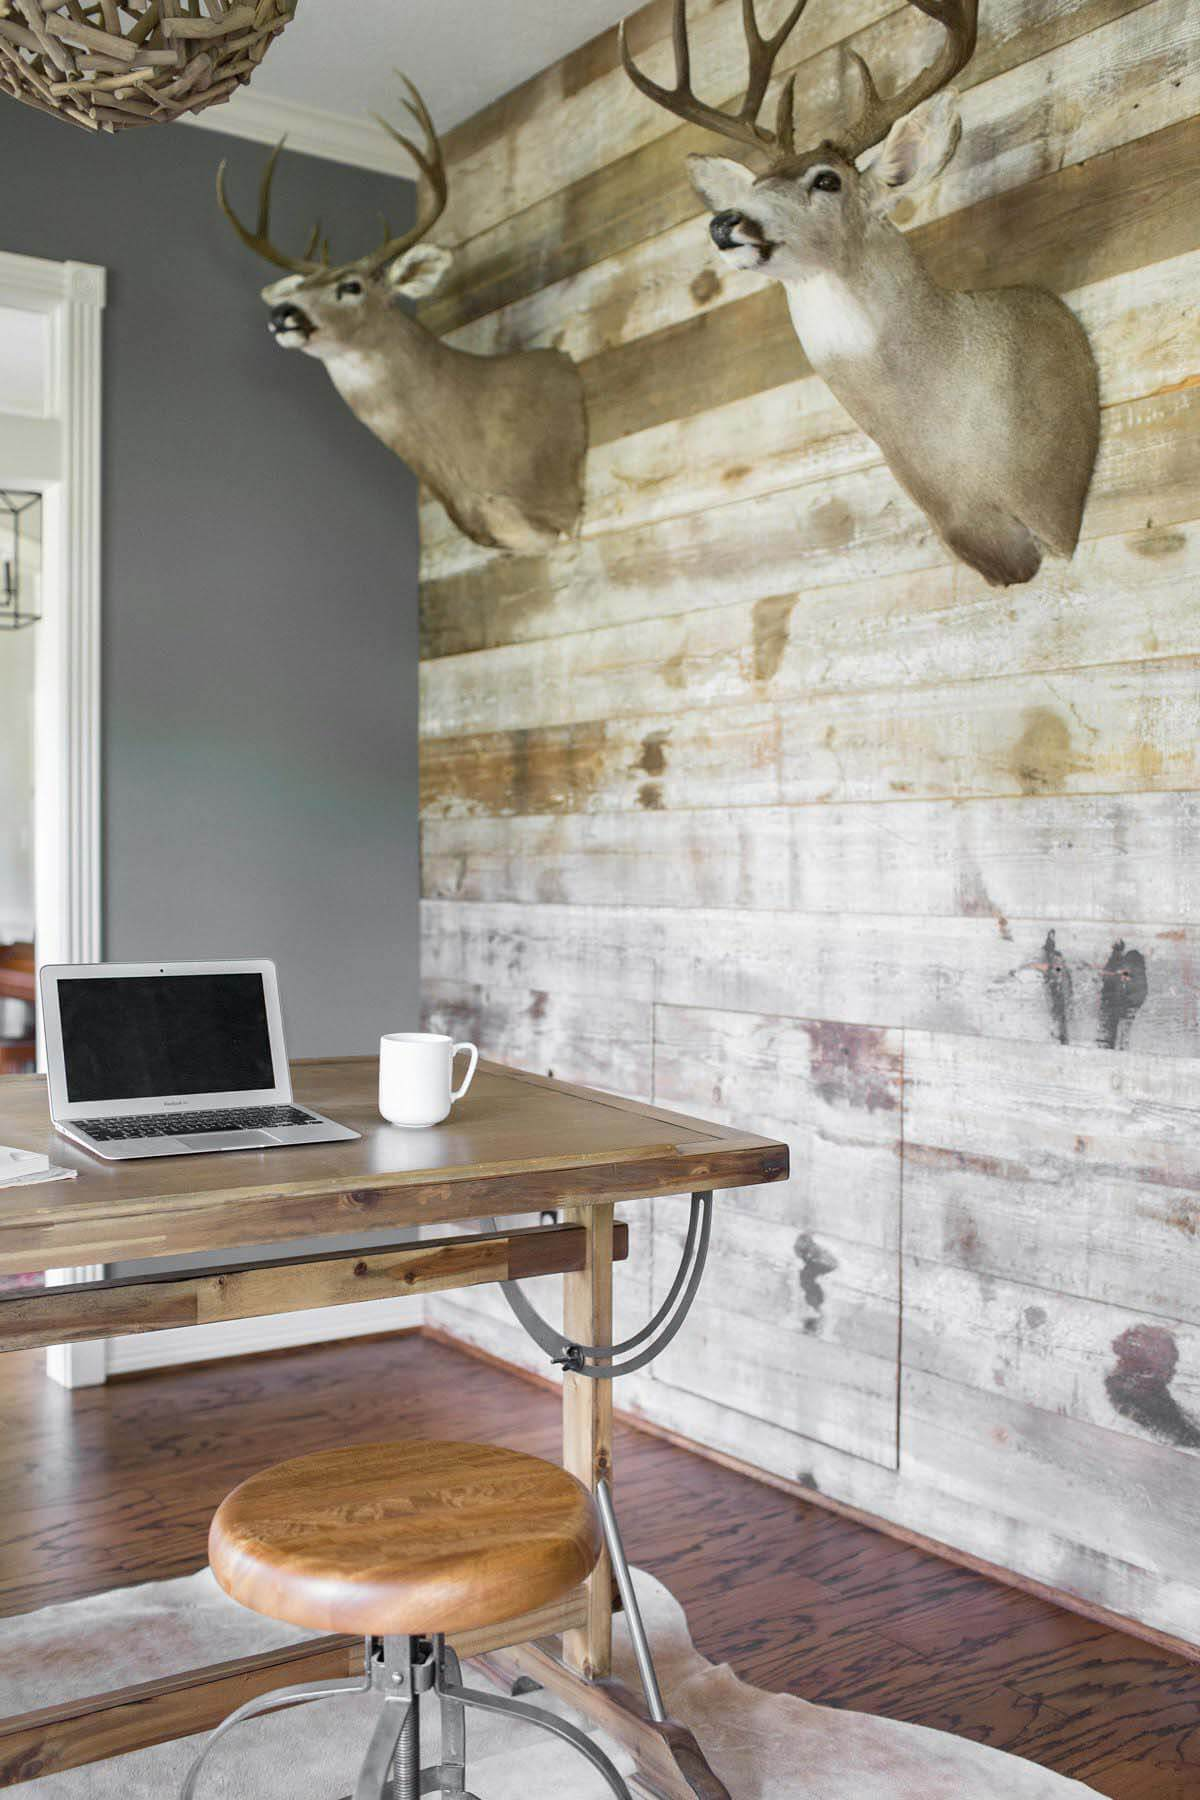 Study with desk nook and hunting trophies in Houston farmhouse renovation